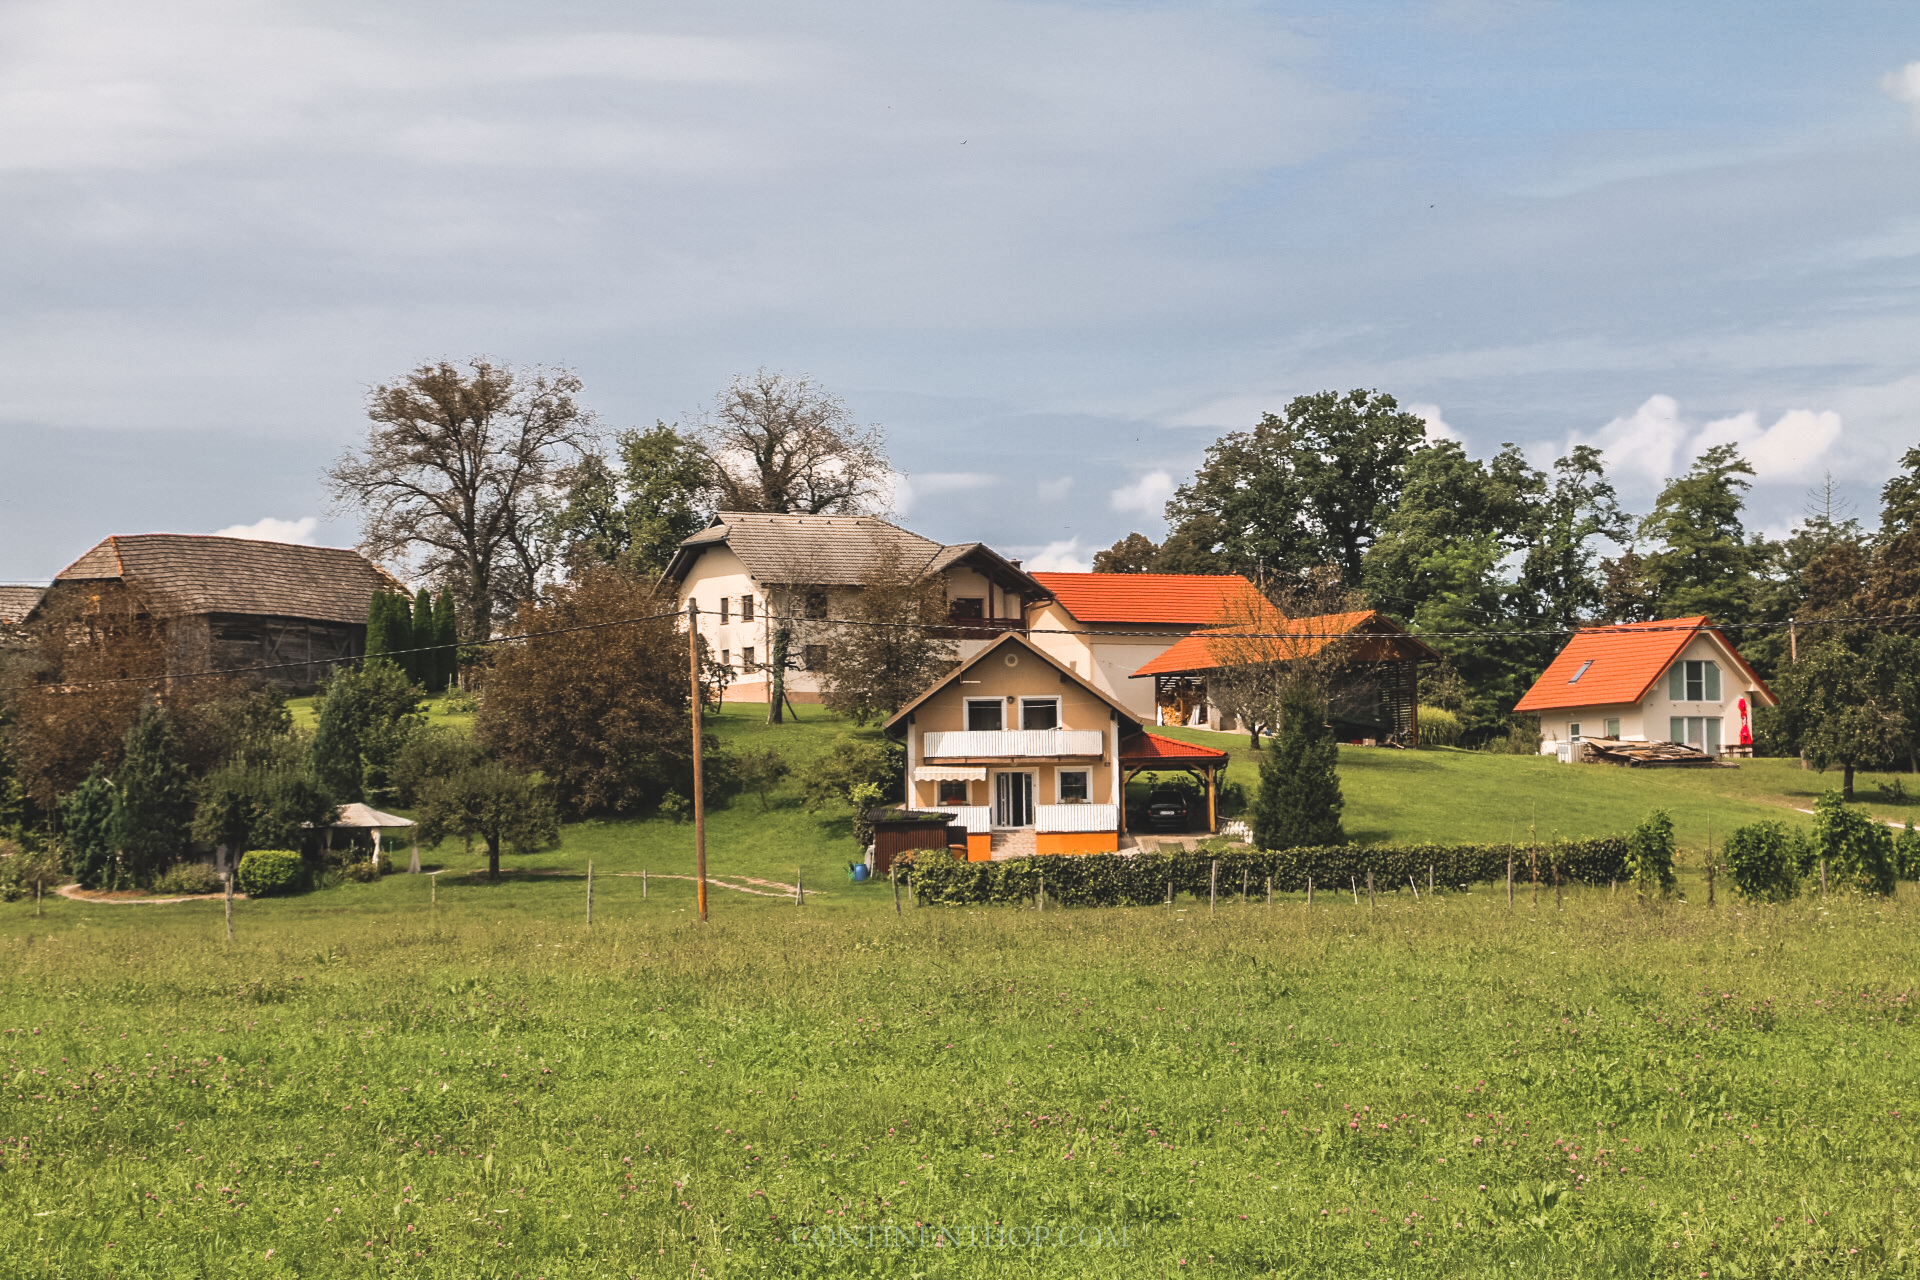 houses in front of luxury glamping huts at big berry resort in bela krajina slovenia